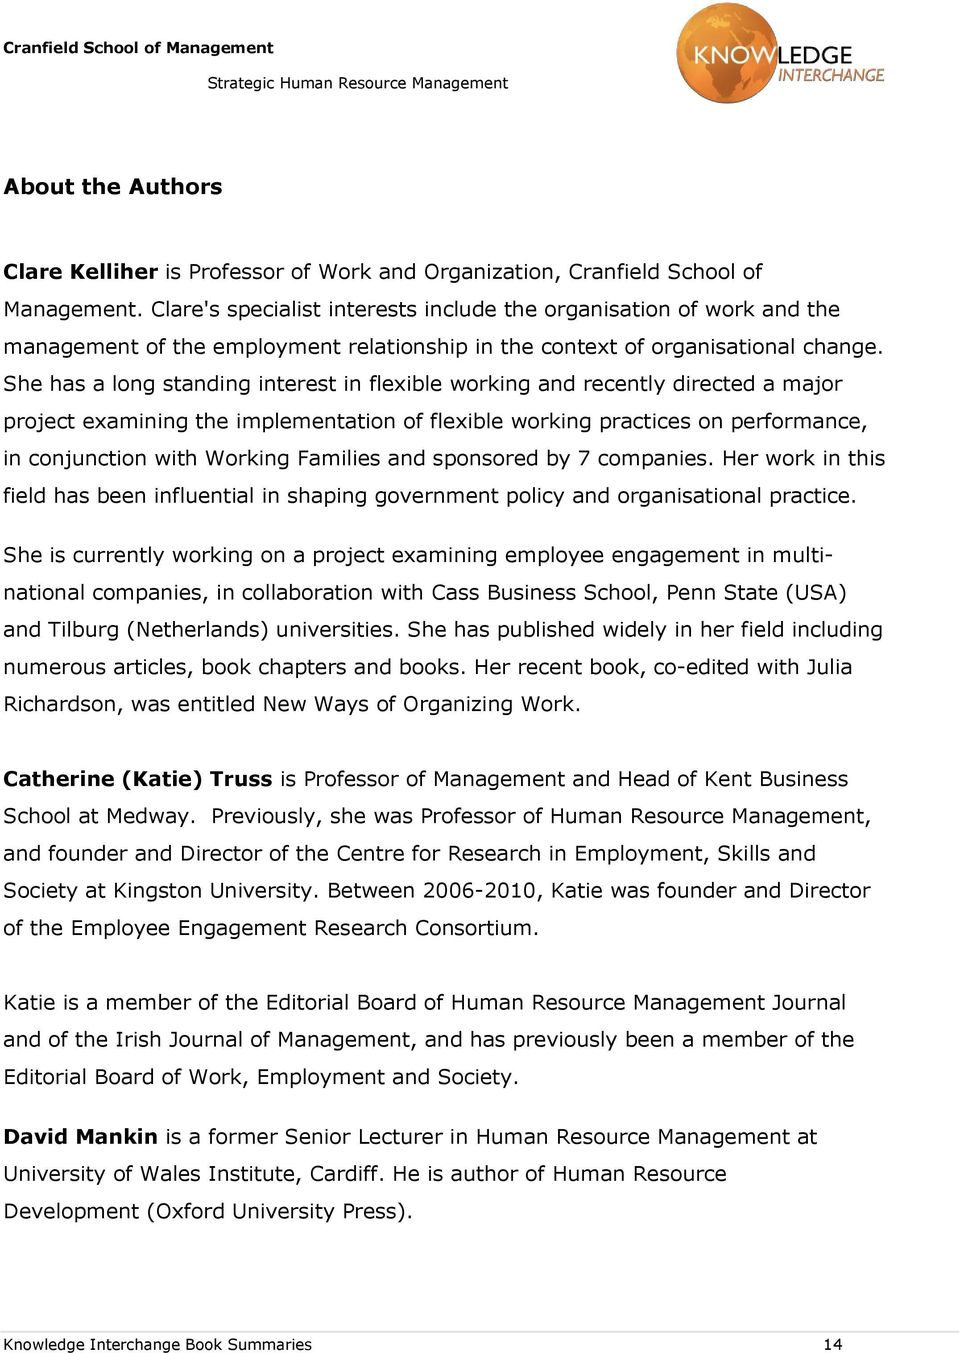 She has a long standing interest in flexible working and recently directed a major project examining the implementation of flexible working practices on performance, in conjunction with Working